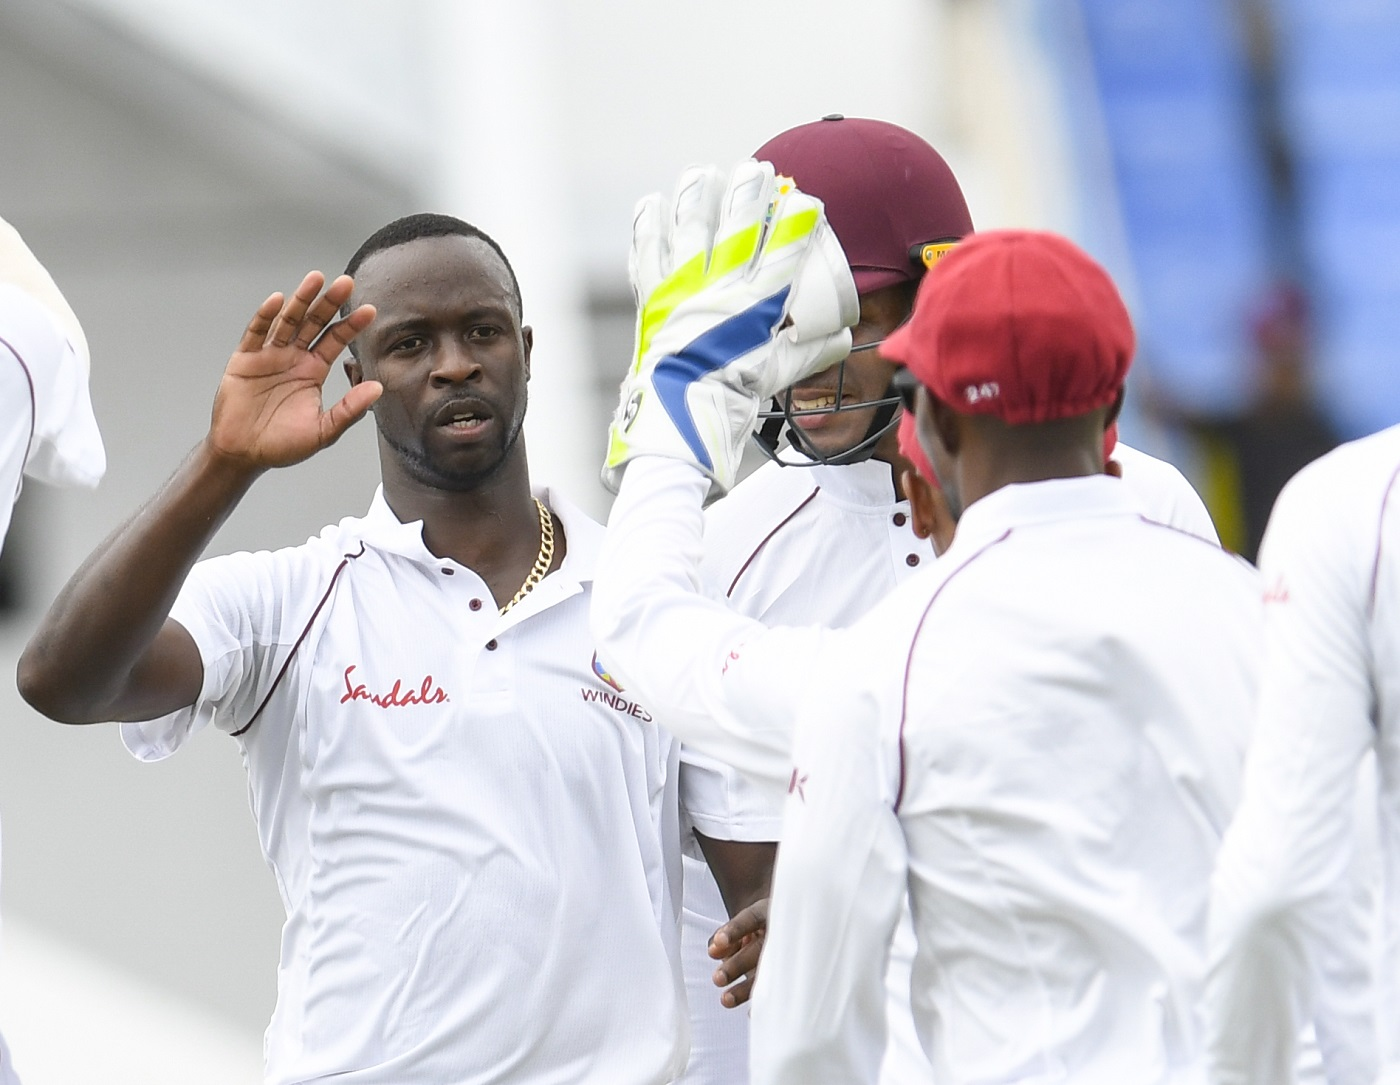 Kemar Roach took 5 wickets in the space of 12 balls in the first Test against Bangladesh. (photo - getty)